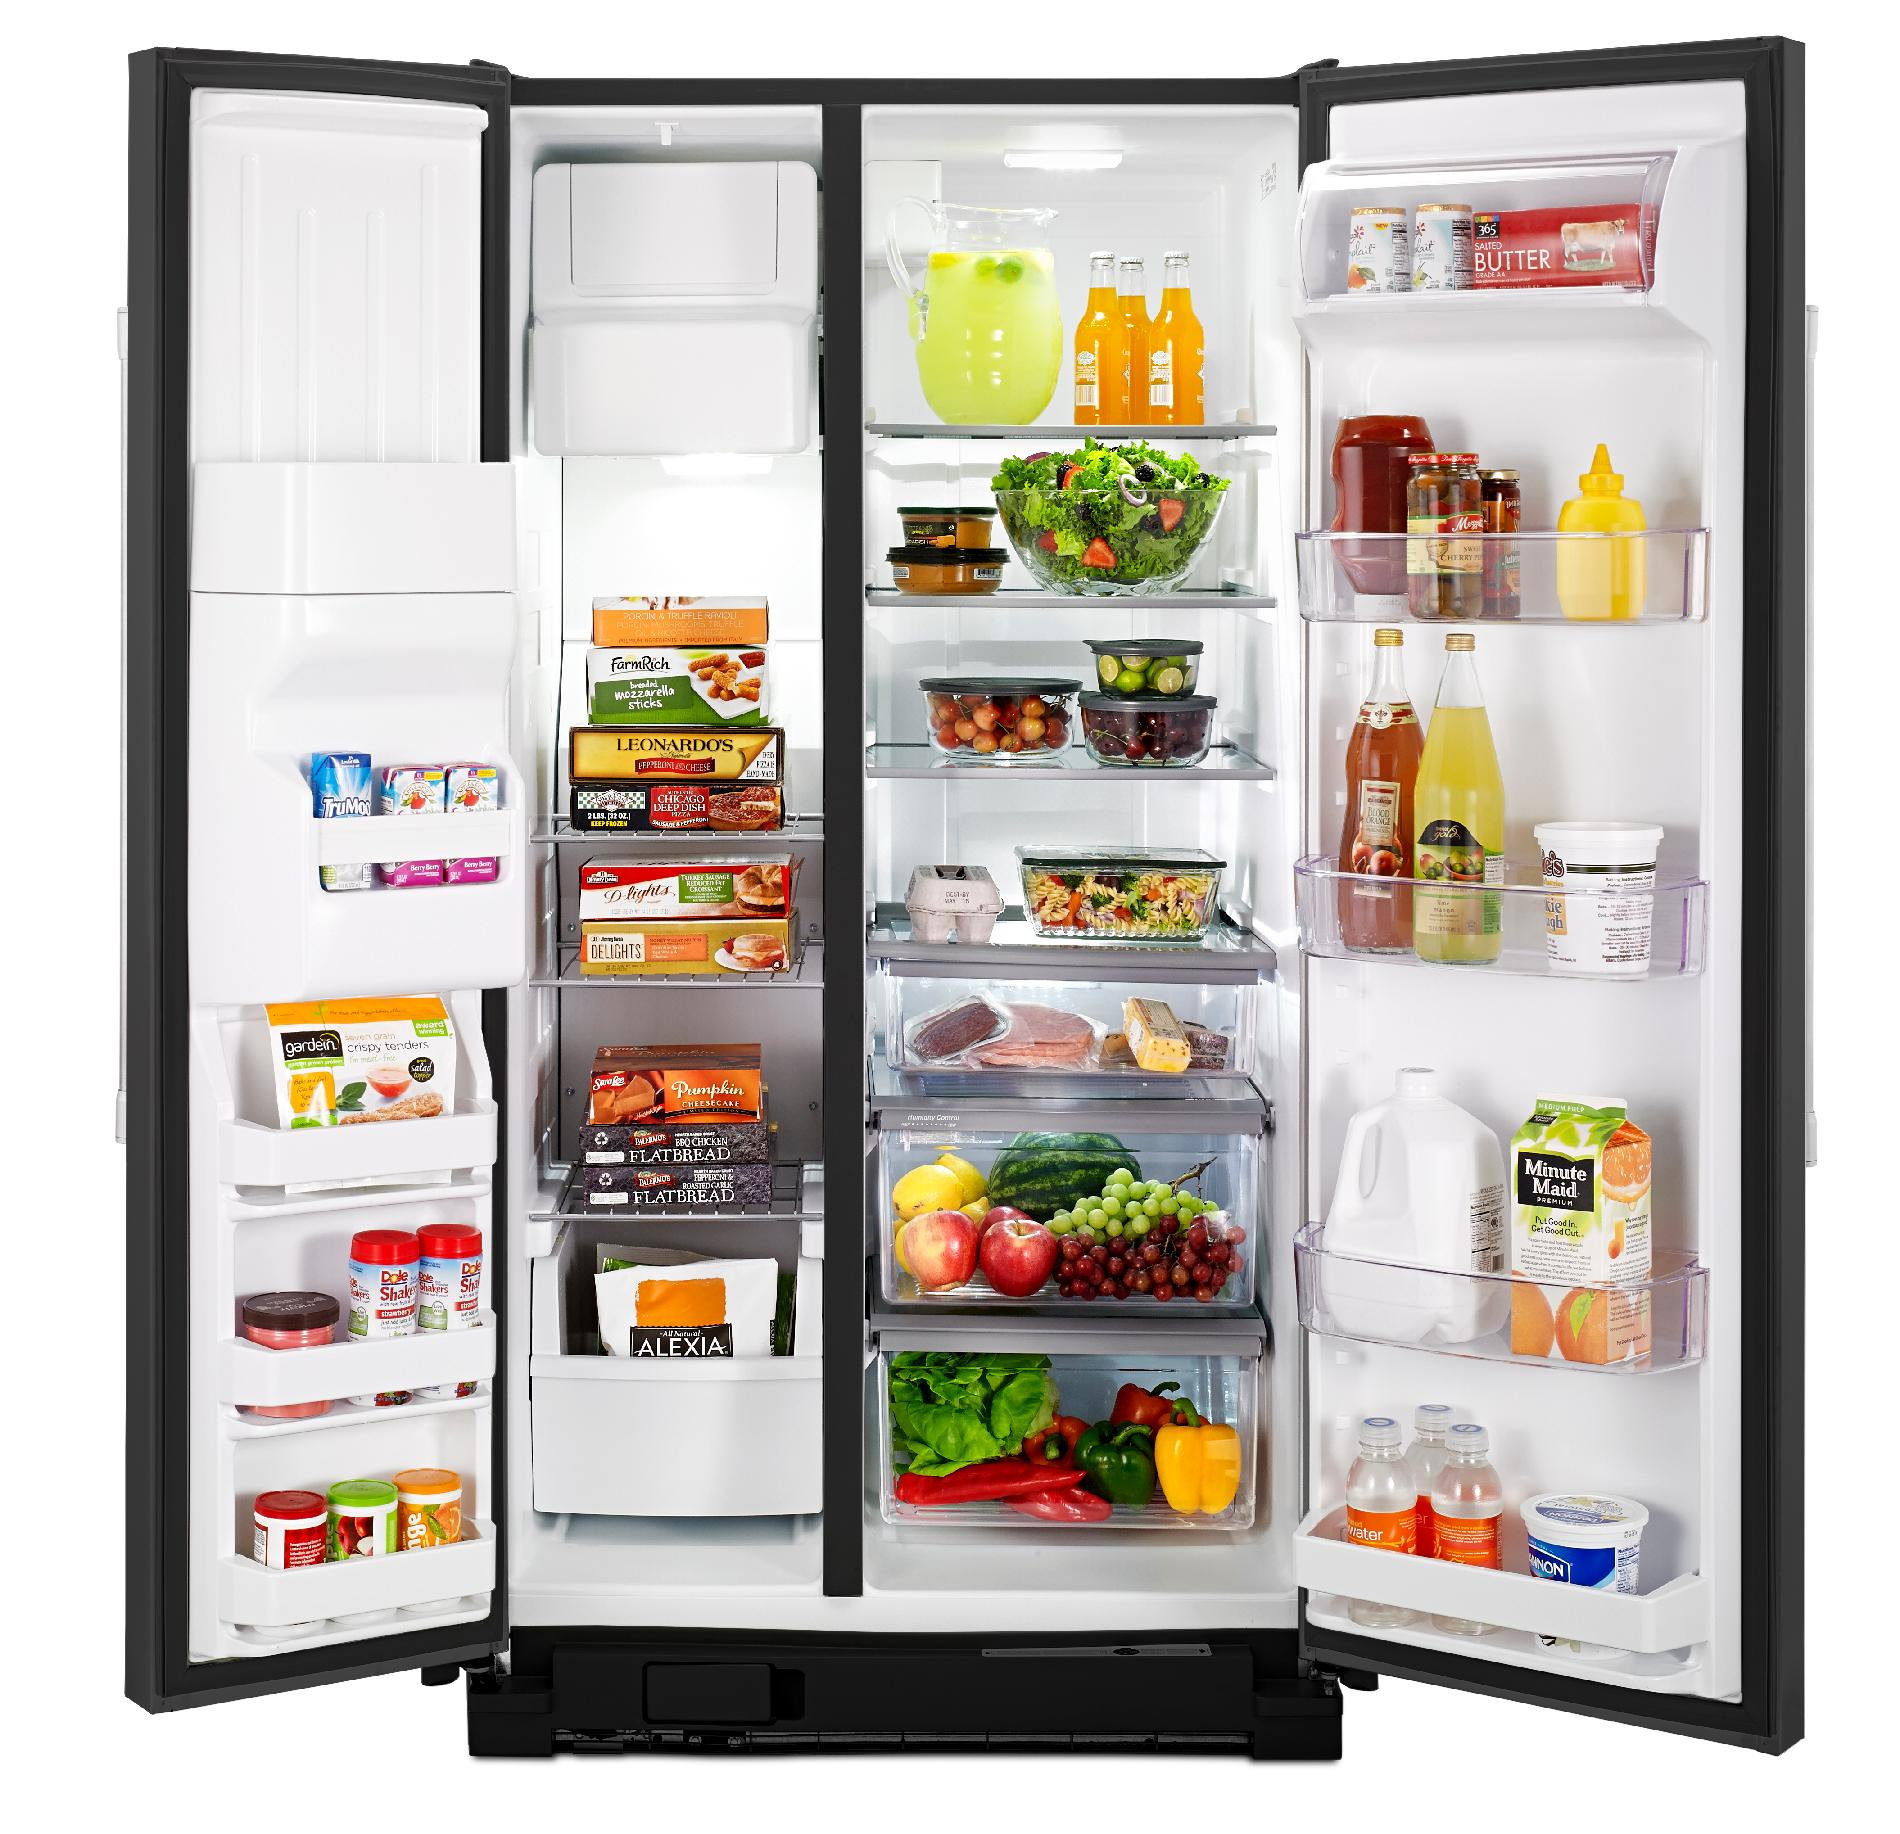 Maytag MSF25D4MDE 24.6 cu. ft. Side-by-Side Refrigerator w/ Ice/Water Dispenser - Black